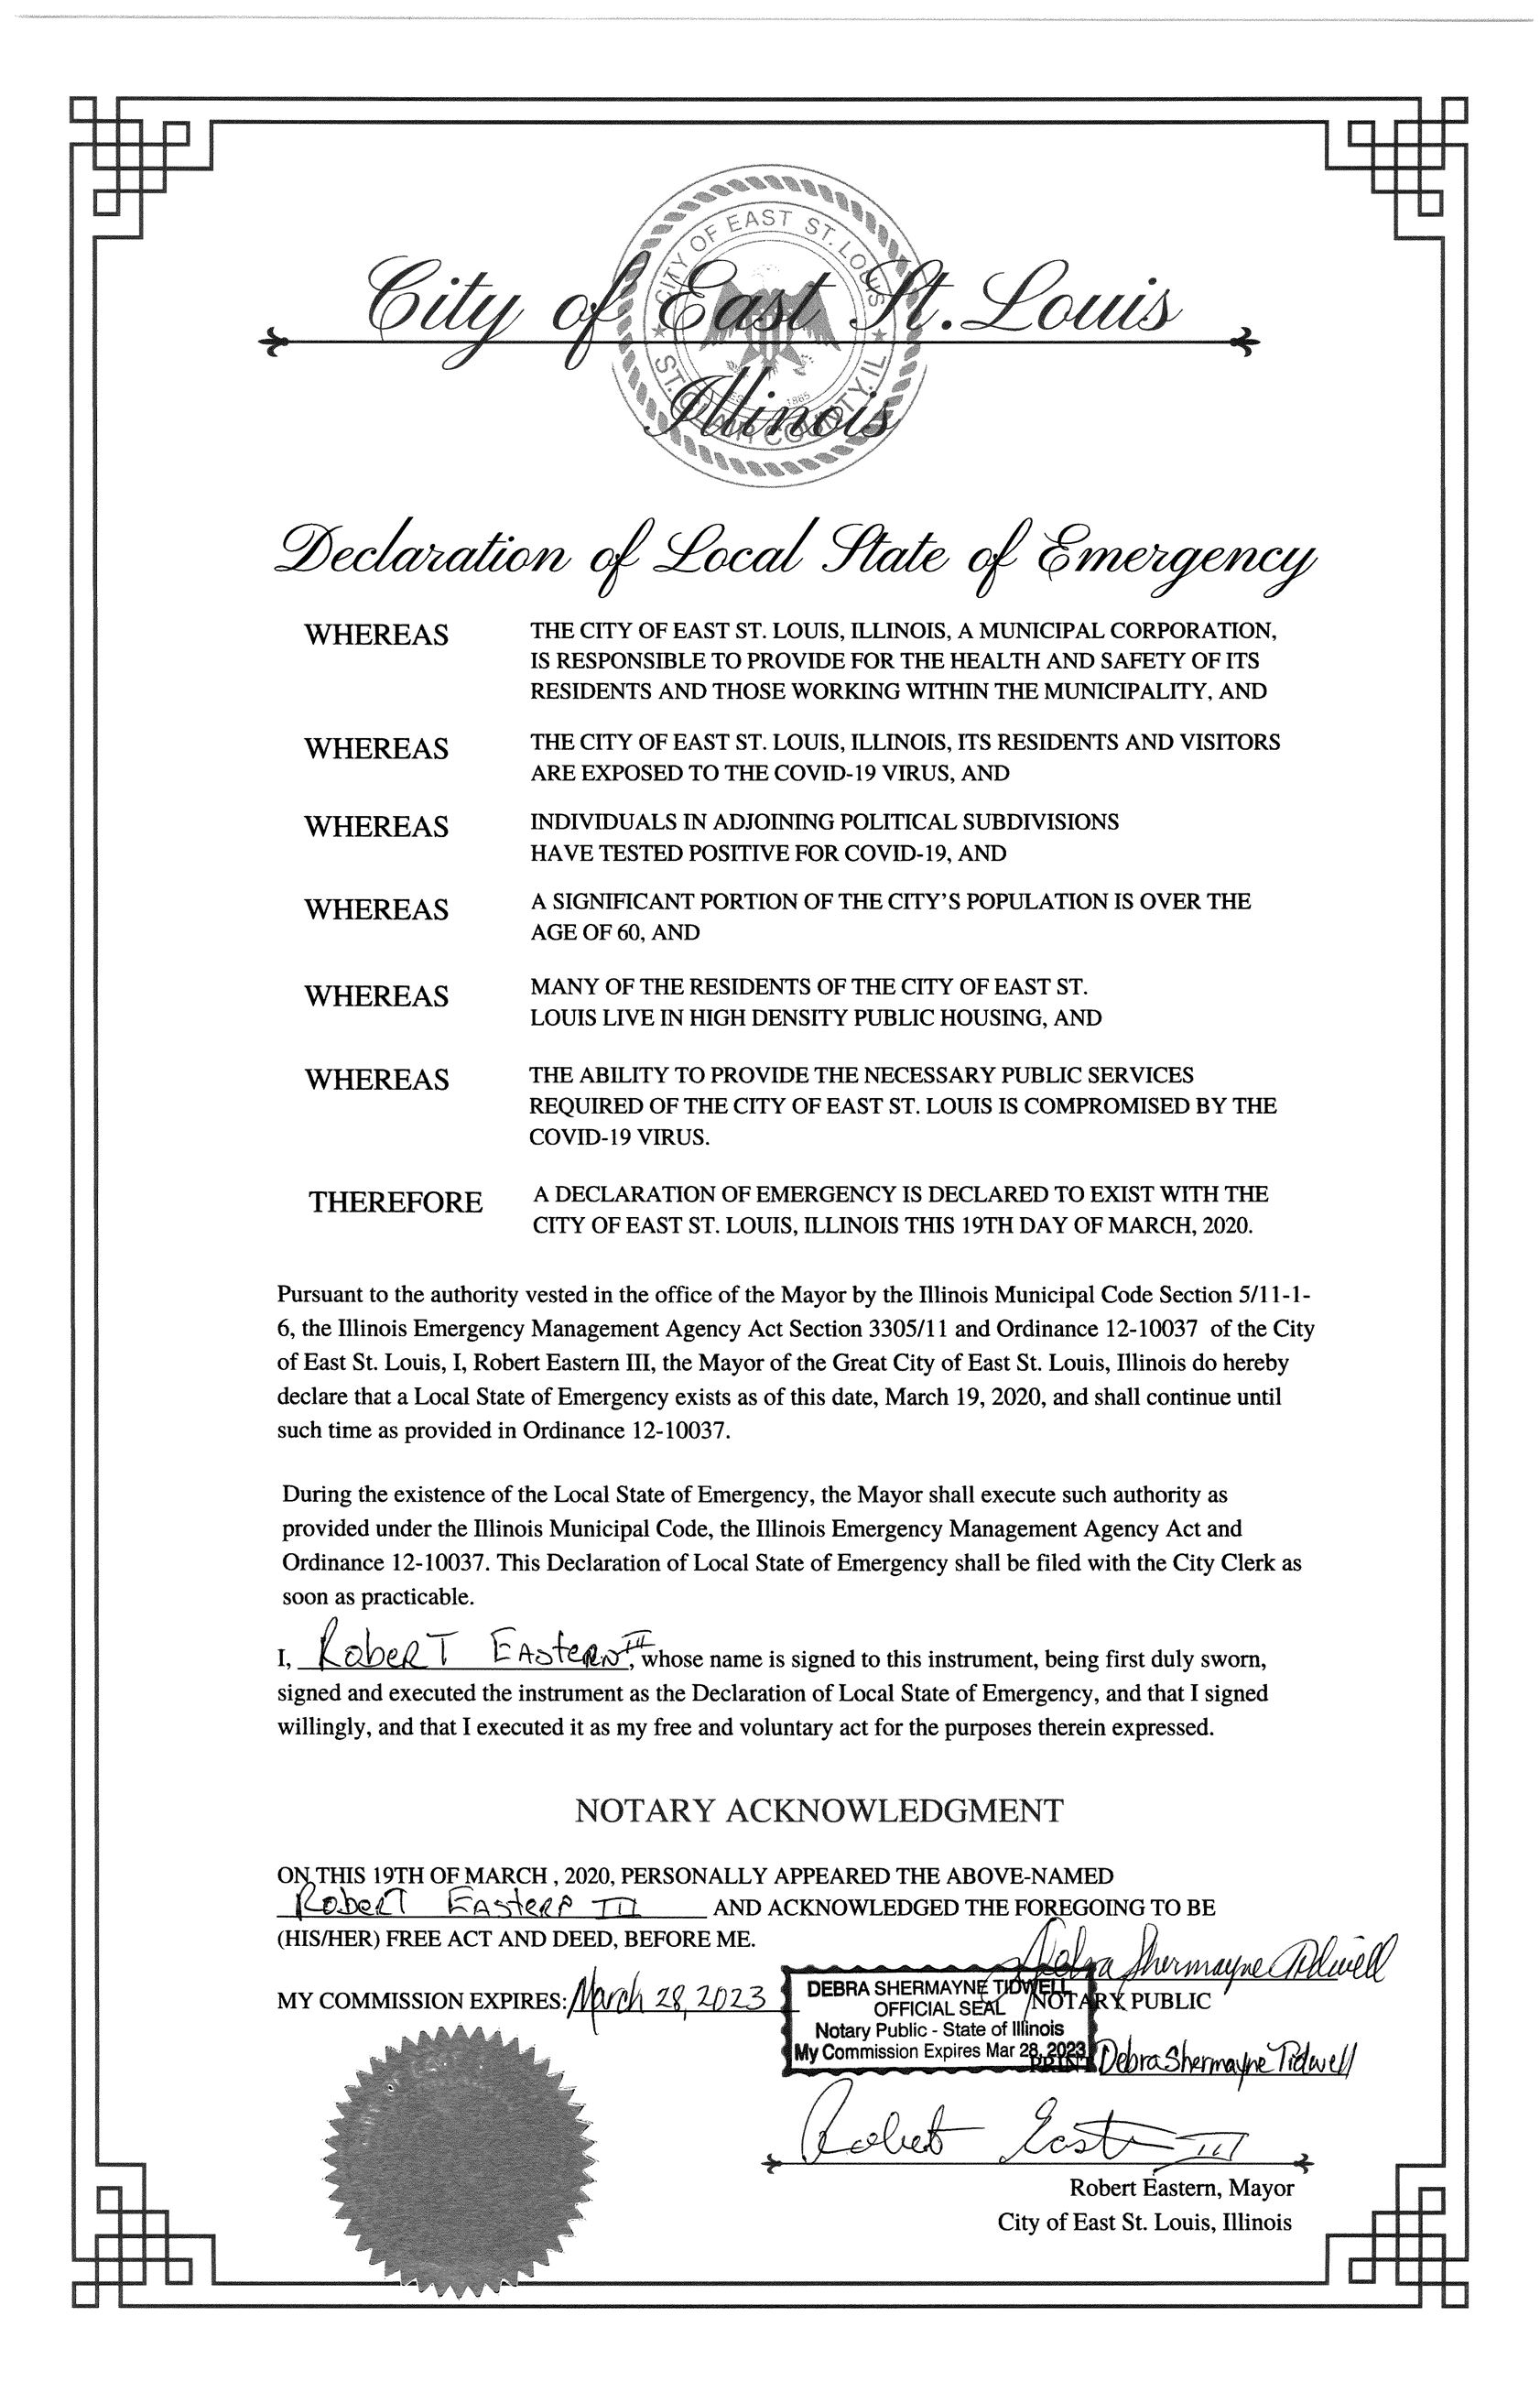 EAST ST. LOUIS DECLARATION OF LOCAL STATE OF EMERGENCY